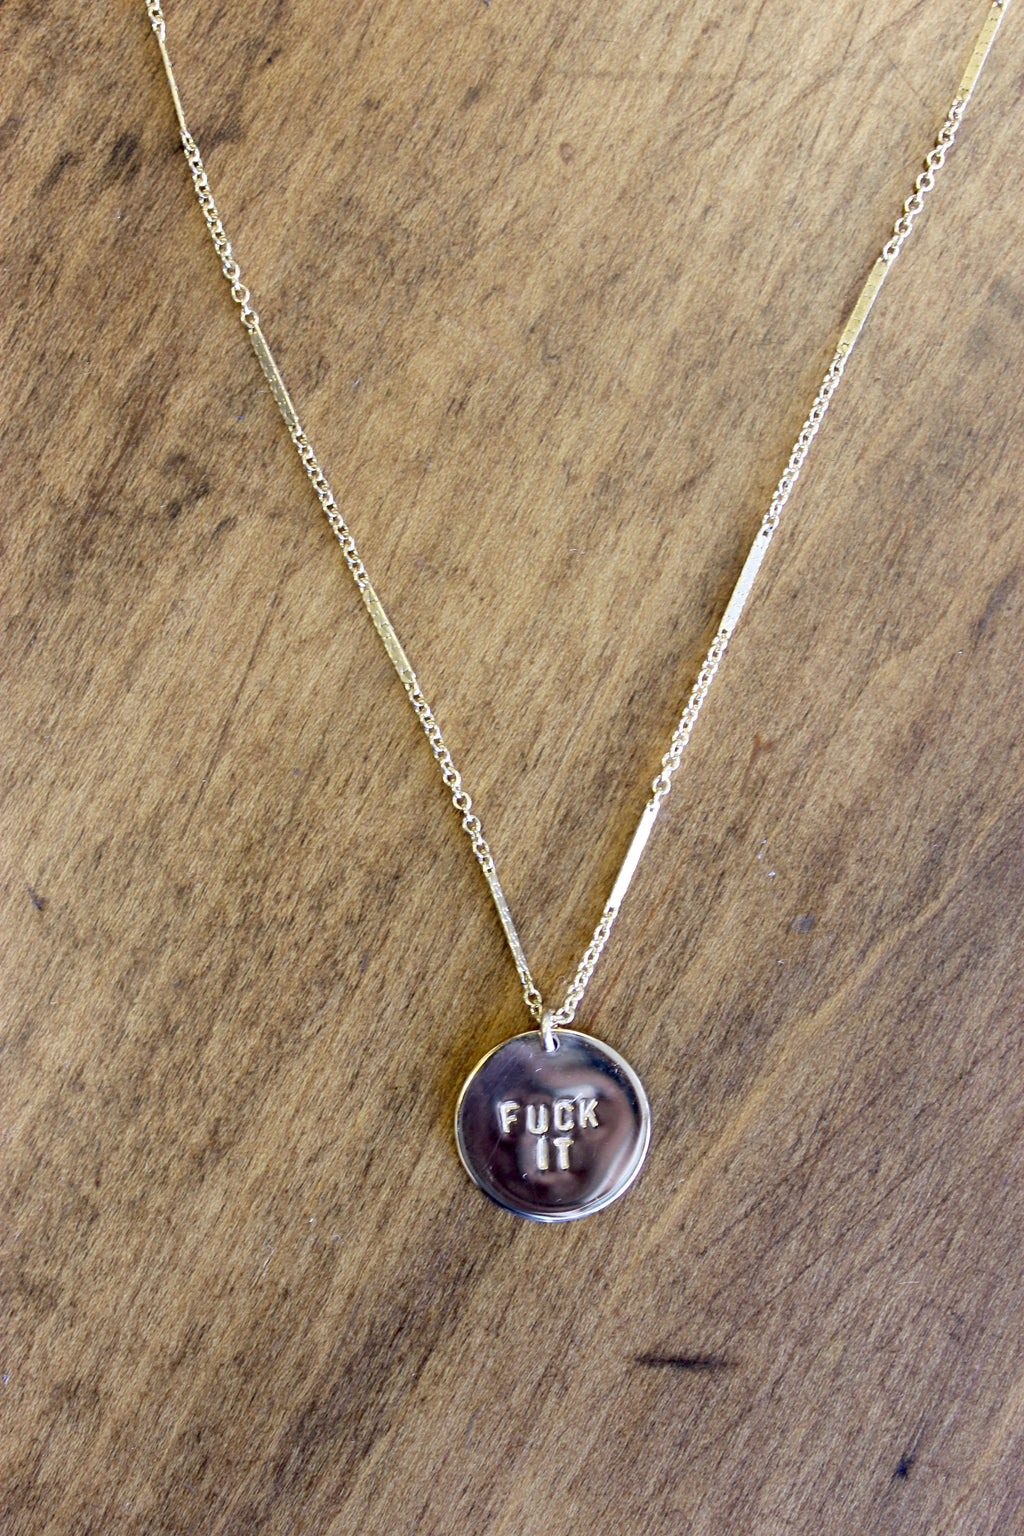 FUCK IT COIN NECKLACE